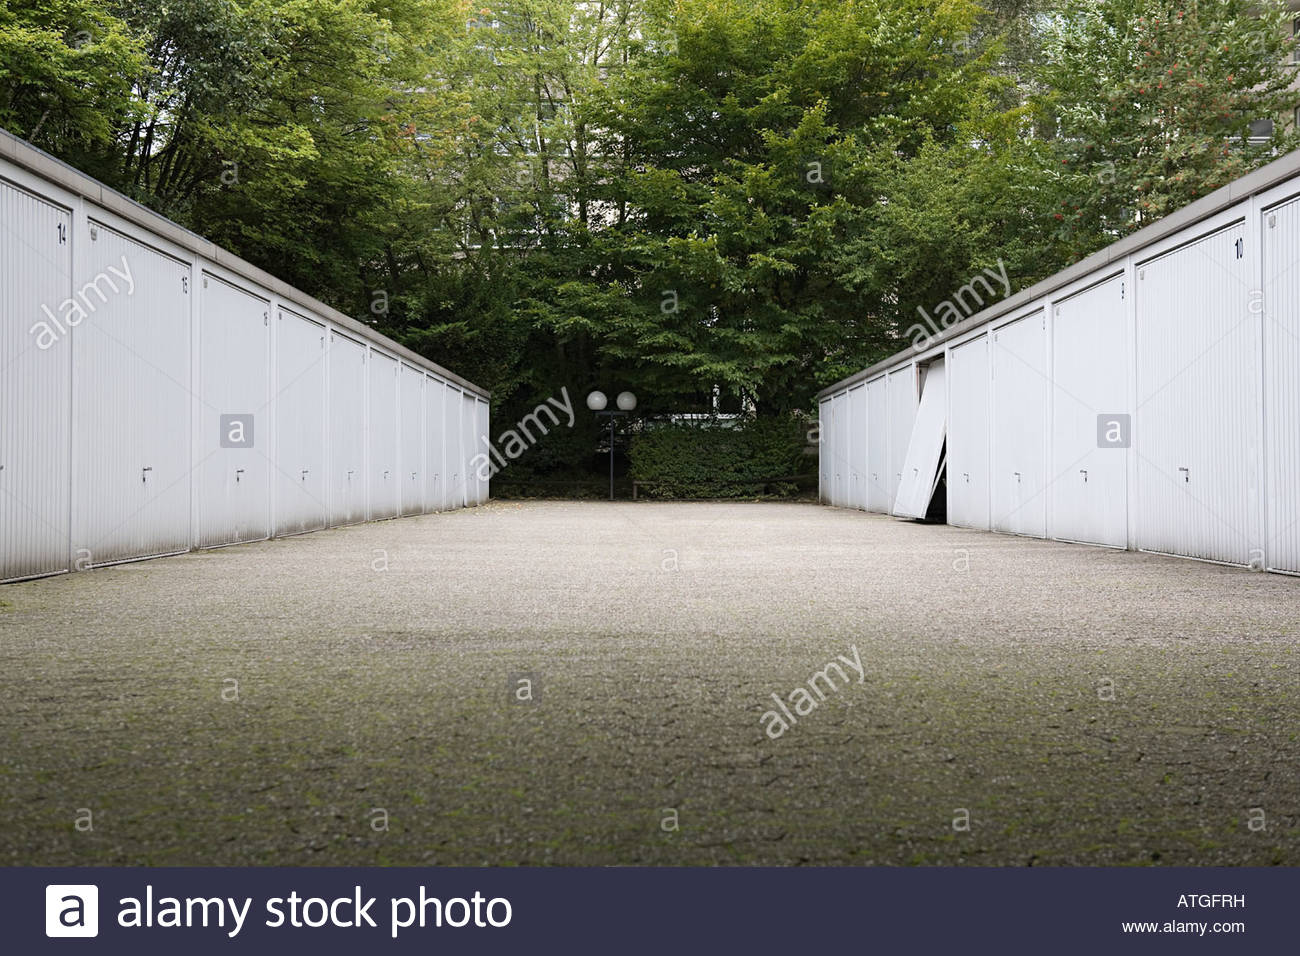 Garages in a row - Stock Image